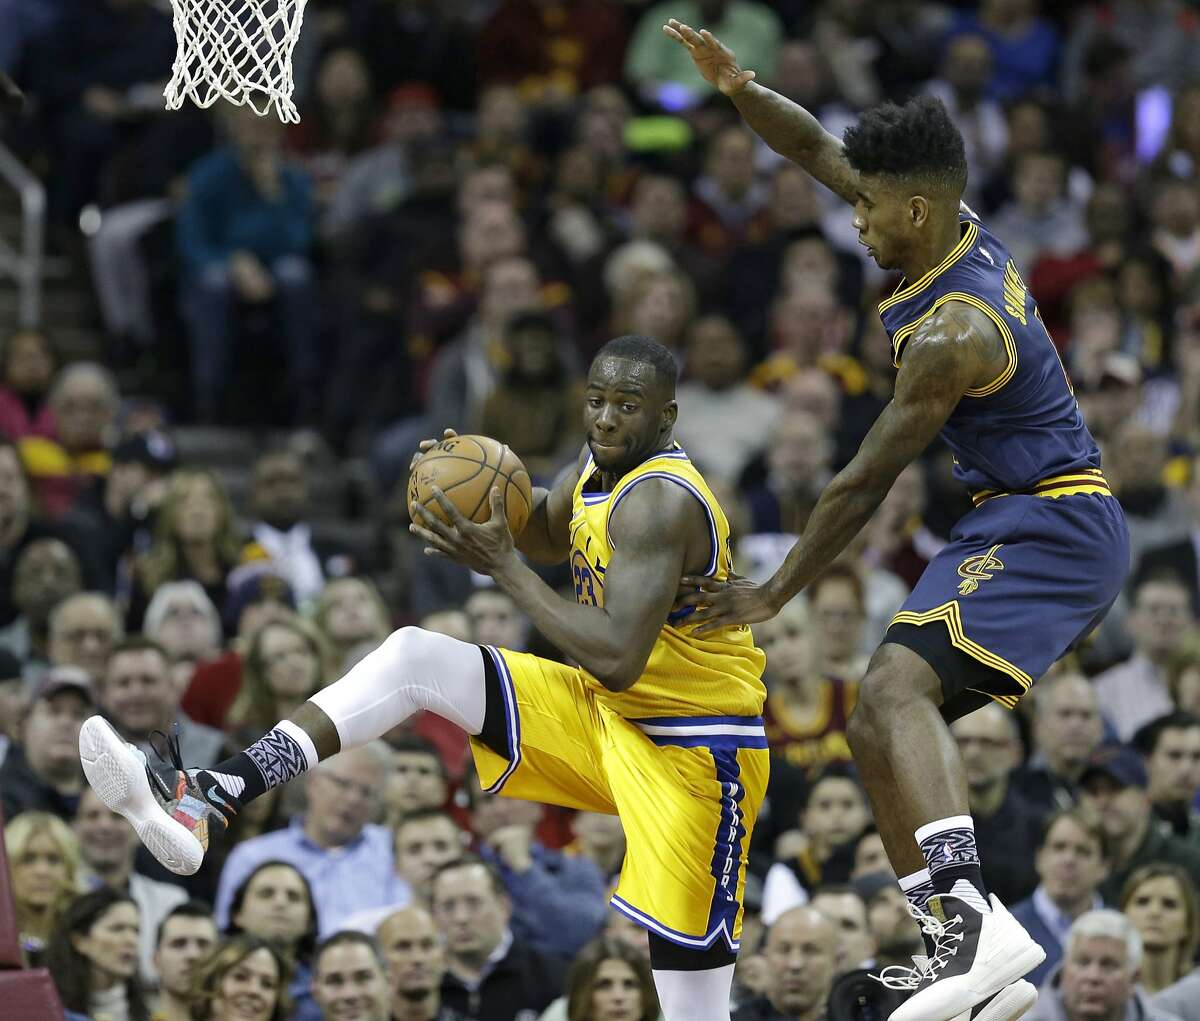 Golden State Warriors' Draymond Green, left, gets the rebound ahead of Cleveland Cavaliers' Iman Shumpert, right, in the first half of an NBA basketball game Monday, Jan. 18, 2016, in Cleveland. (AP Photo/Tony Dejak)